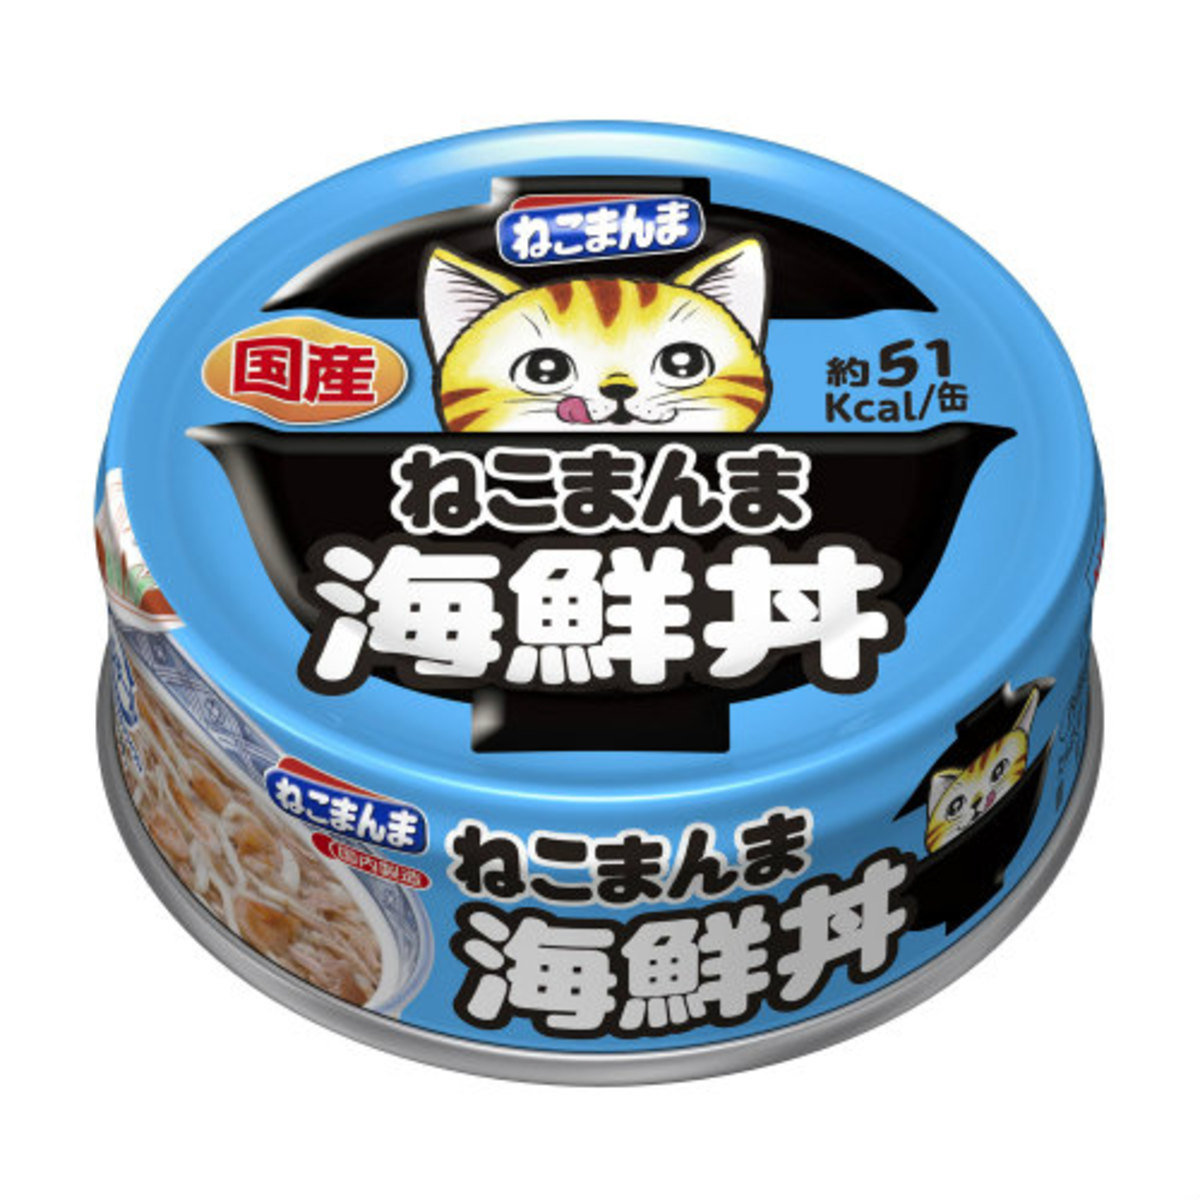 Hagoromo Tuna fish and seafood tuna scallops can food 80g